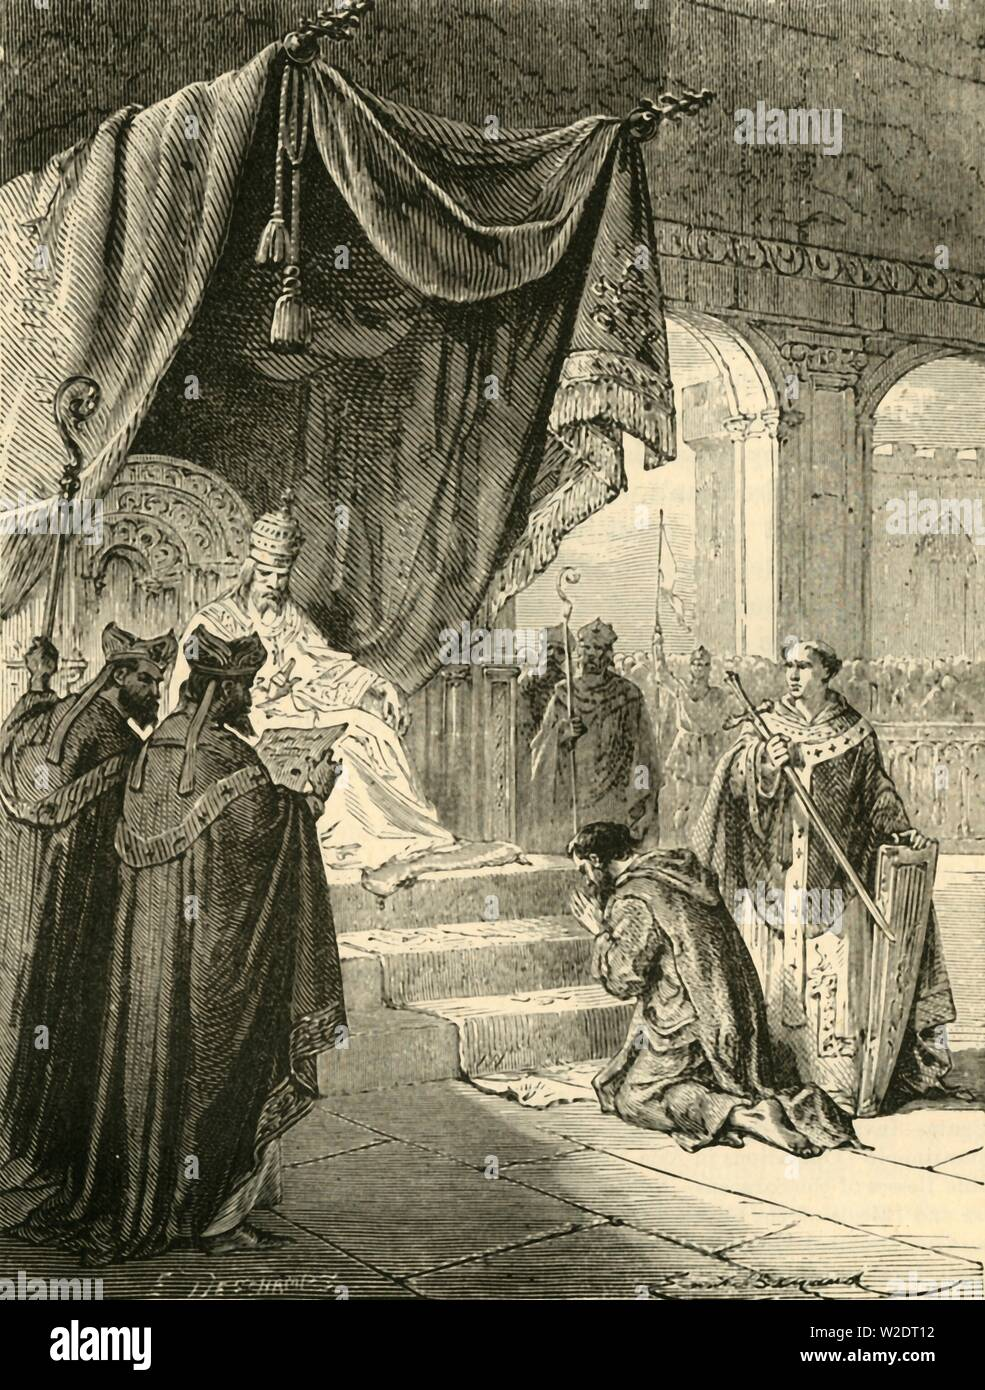 """'Louis the Pious Doing Penance for the Treatment of his Nephew, Bernard', (c818), 1890. Louis the Pious (778- 840) King of the Franks and co-emperor with his father Charlemagne,  in penance for blinding his nephew Bernard of Italy, a procedure which killed him.  From """"Cassell's Illustrated Universal History, Vol. III - The Middle Ages"""", by Edmund Ollier. [Cassell and Company, Limited, London, Paris and Melbourne, 1890. ] - Stock Image"""